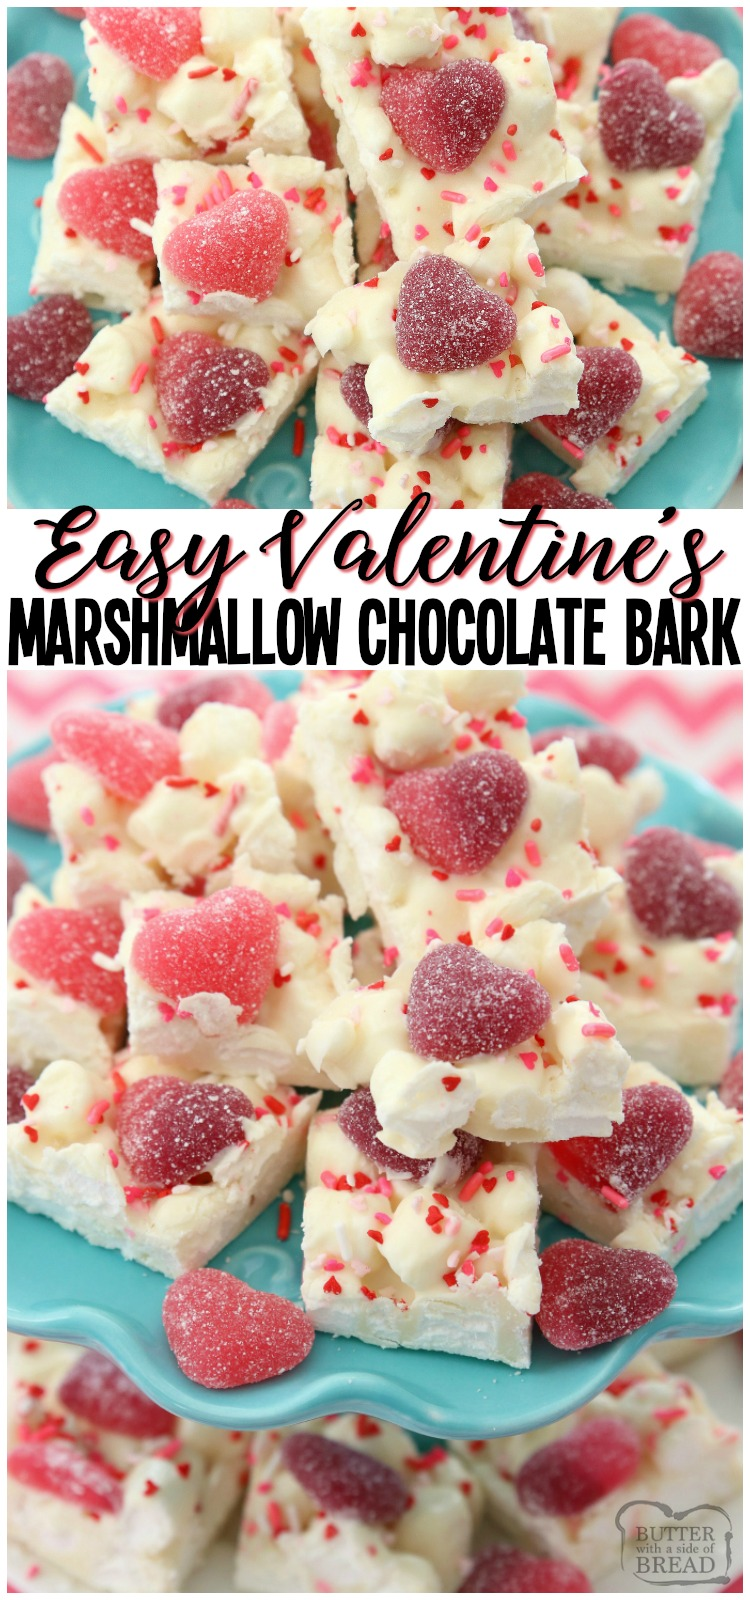 Valentine's Marshmallow Chocolate Bark is a simple, festive dessert that everyone loves! Made in minutes with just 3 ingredients, these chocolate squares are perfect for Valentine's Day! #candy #marshmallows #Valentines #recipe #chocolatebark from BUTTER WITH A SIDE OF BREAD #chocolate